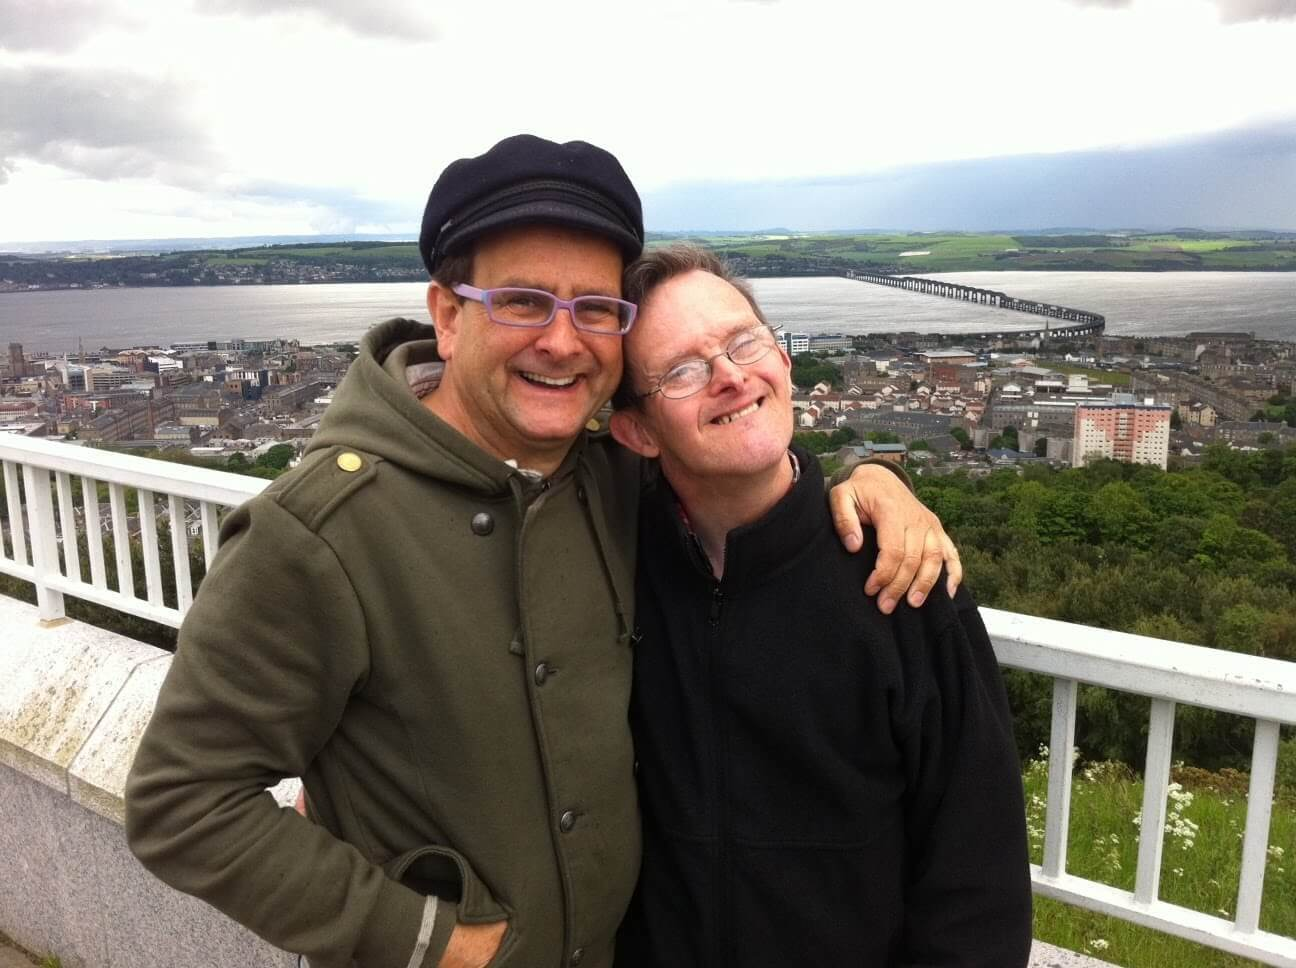 Timmy and his late brother Martin pictured on Dundee Law against the backdrop of the River Tay.